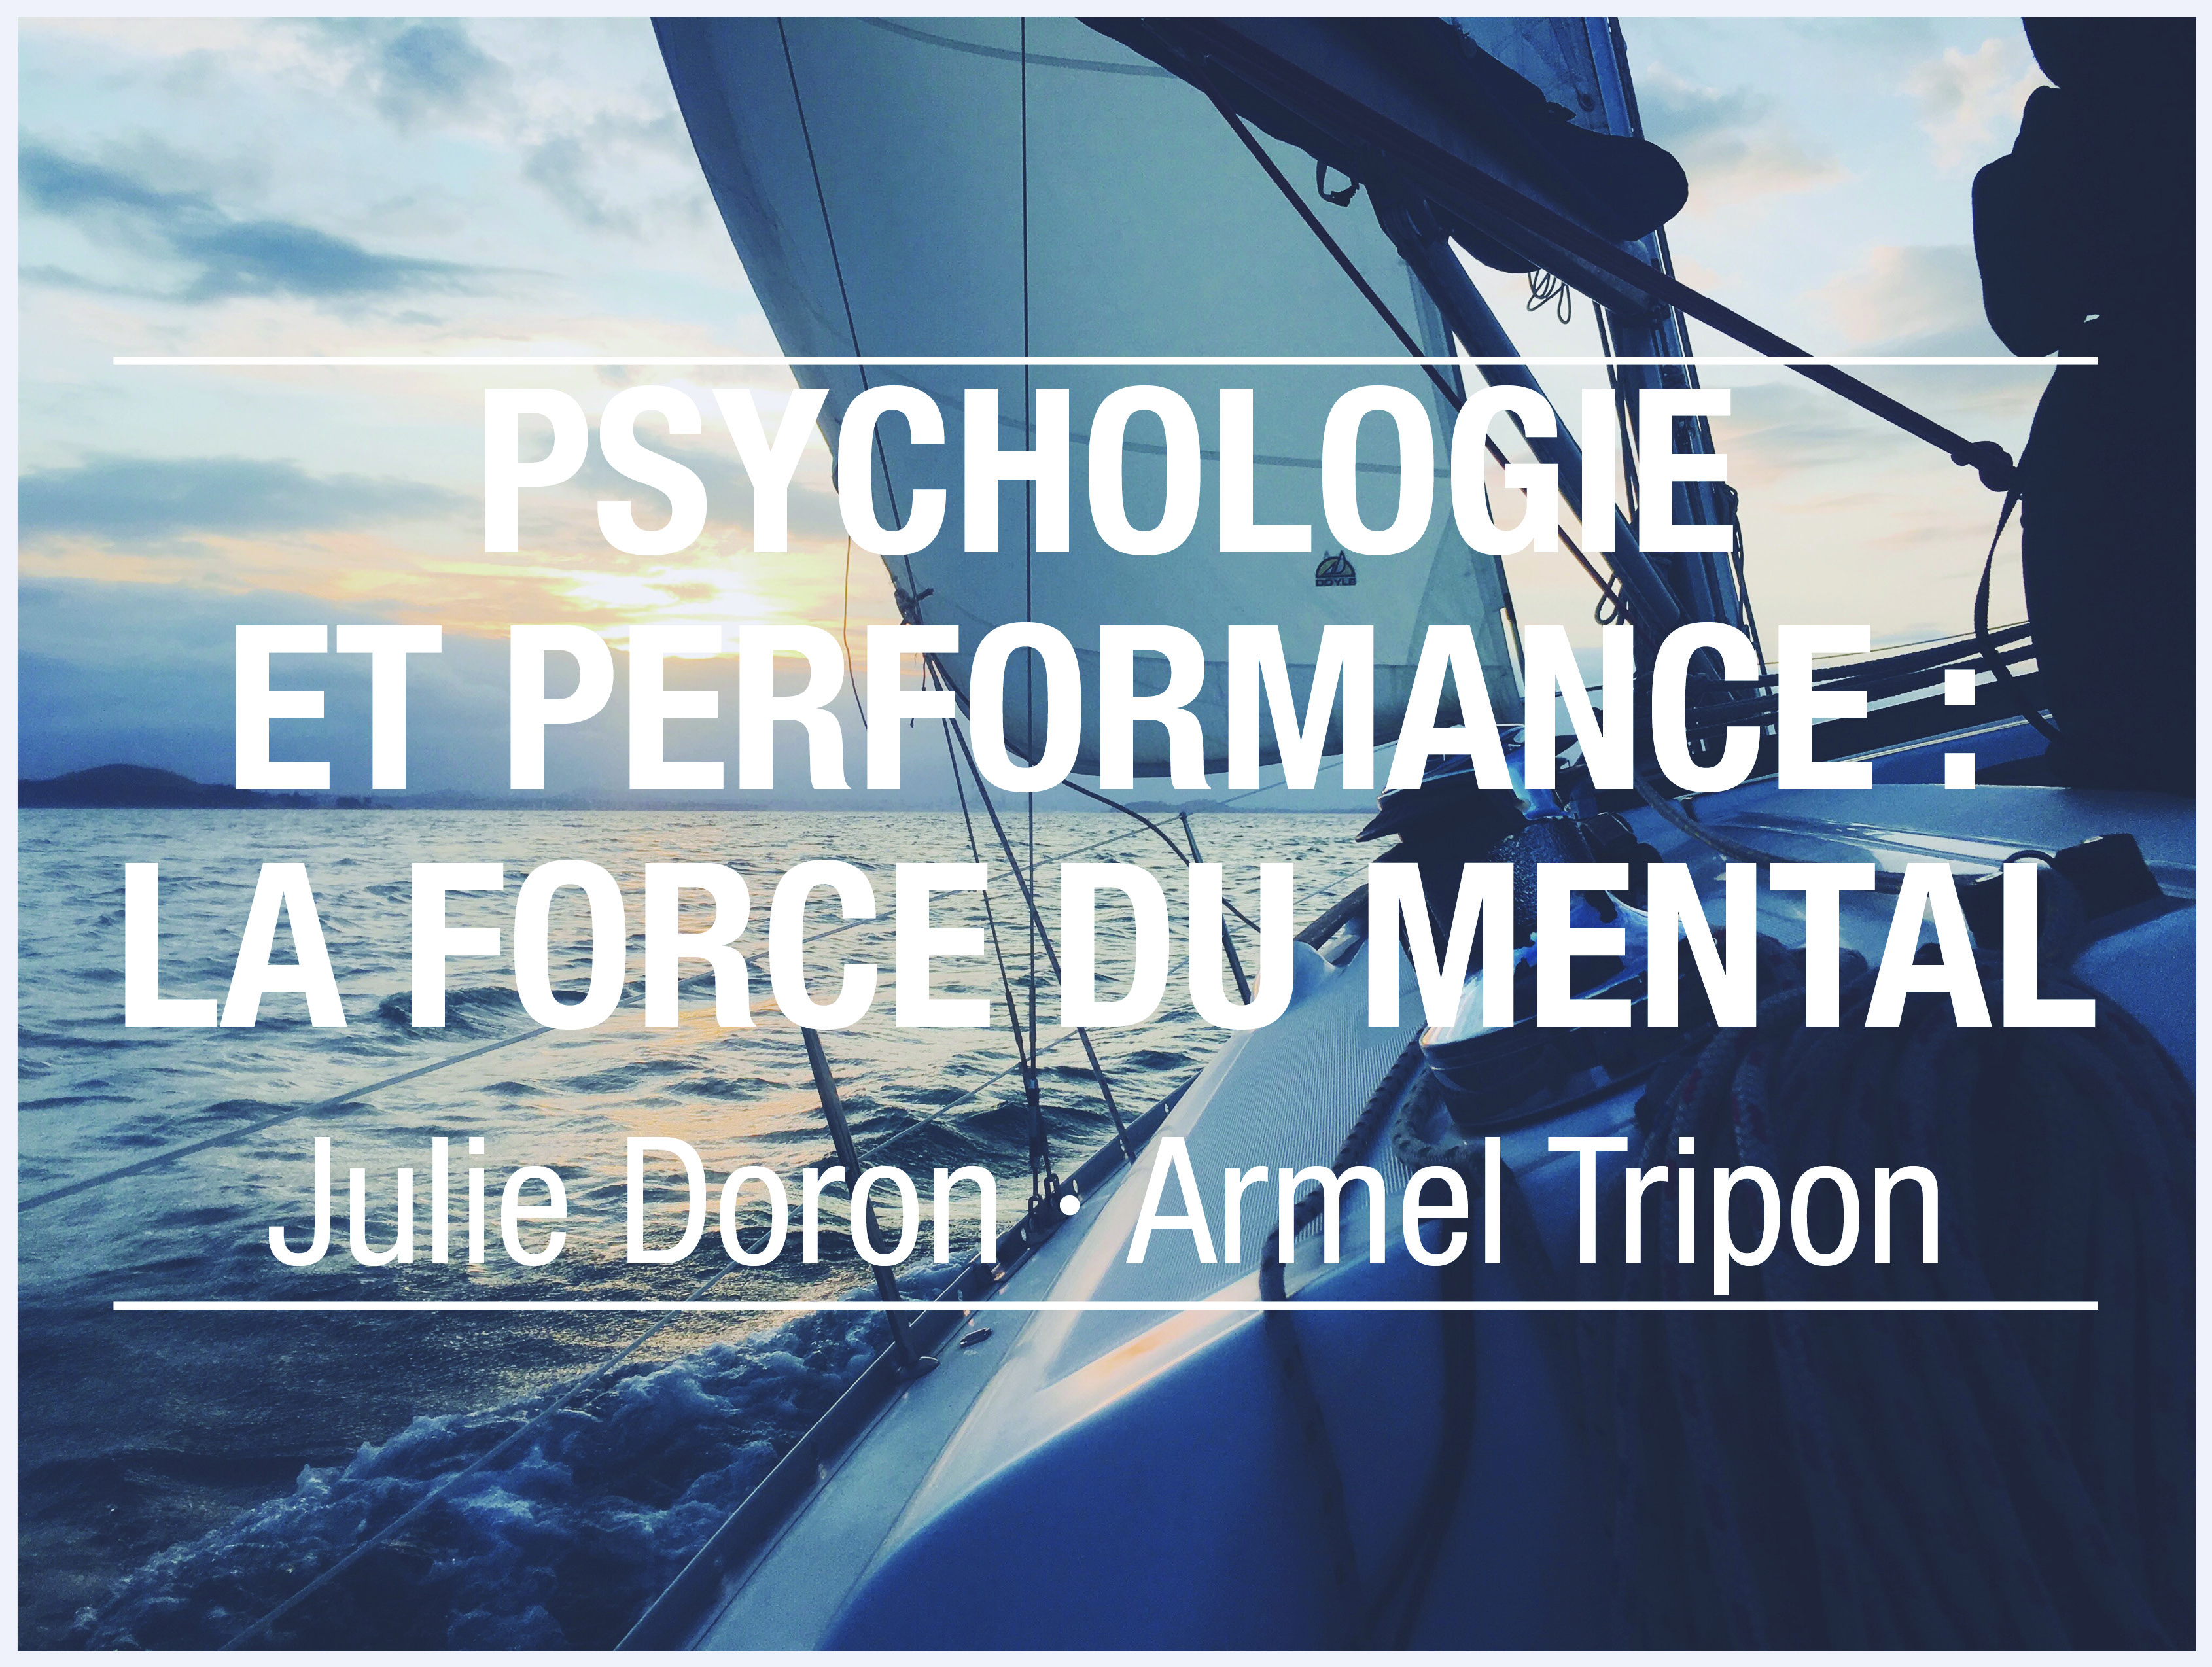 Psychologie et performance : la force du mental - Julie Doron et Armel Tripon